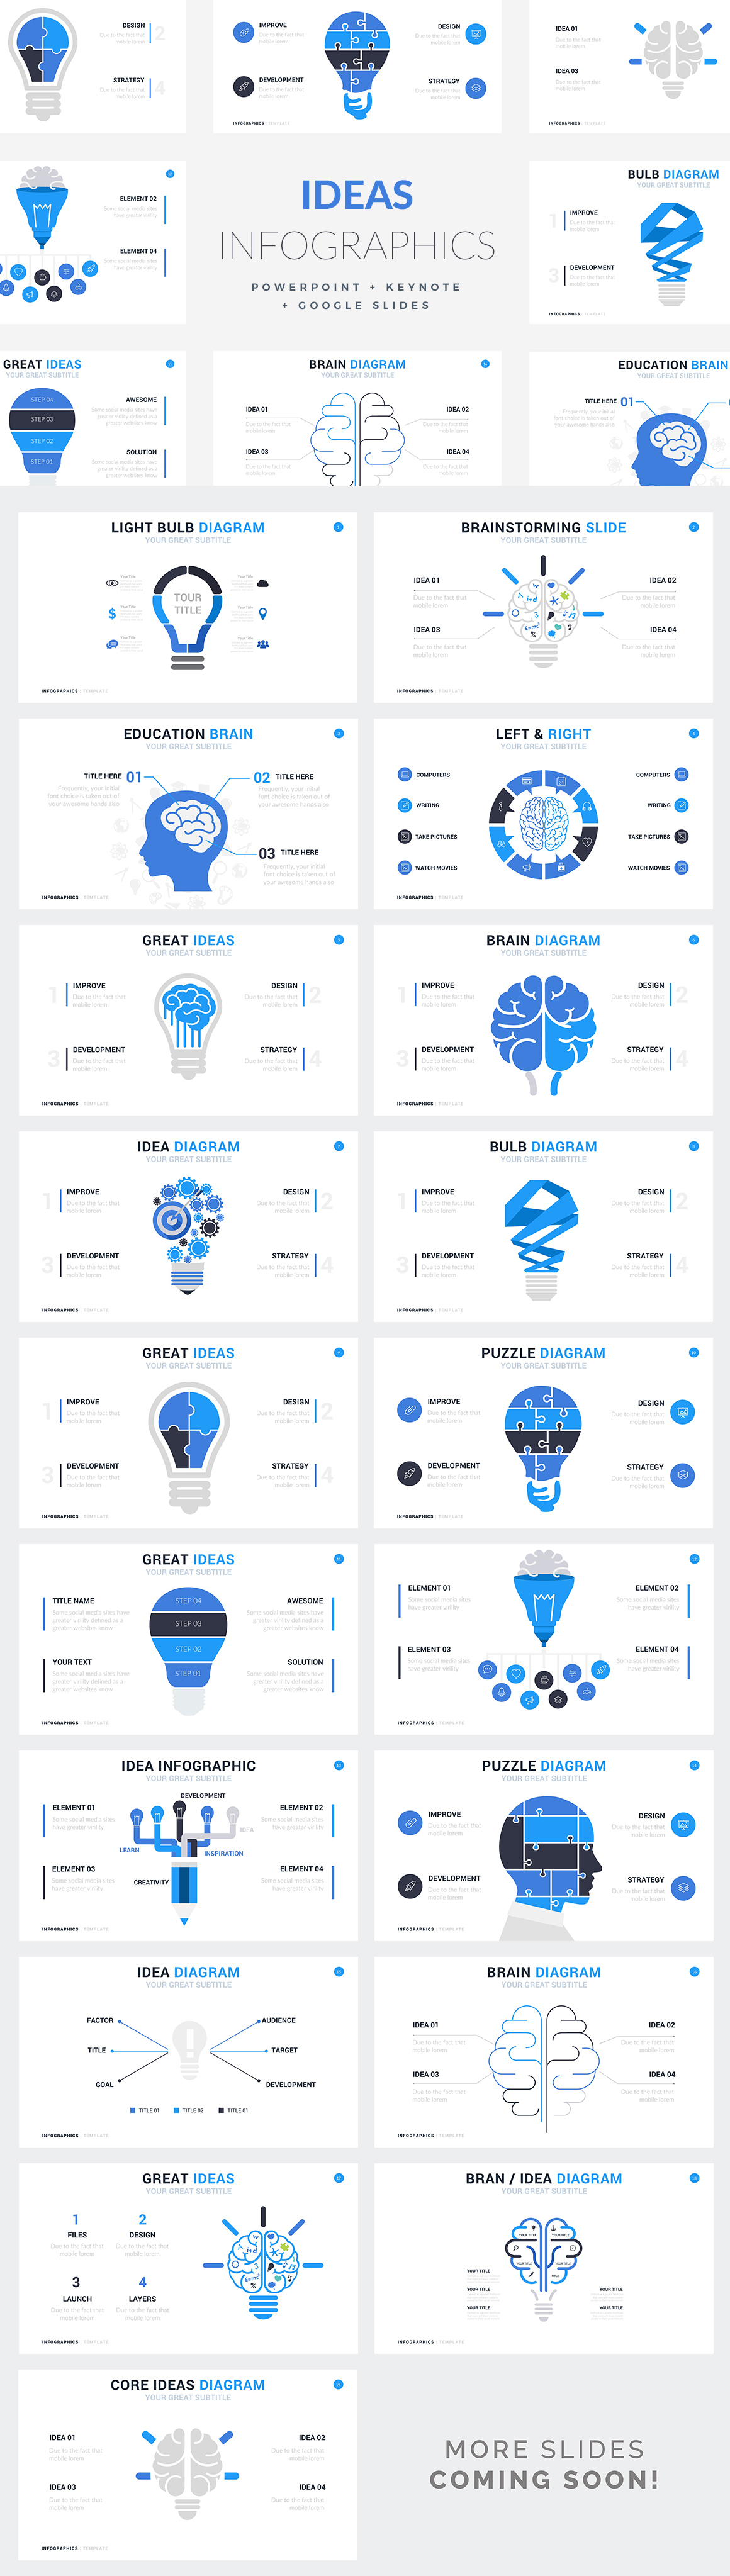 Ideas Infographic Templates - PowerPoint Templates - Keynote Themes - Google Slides